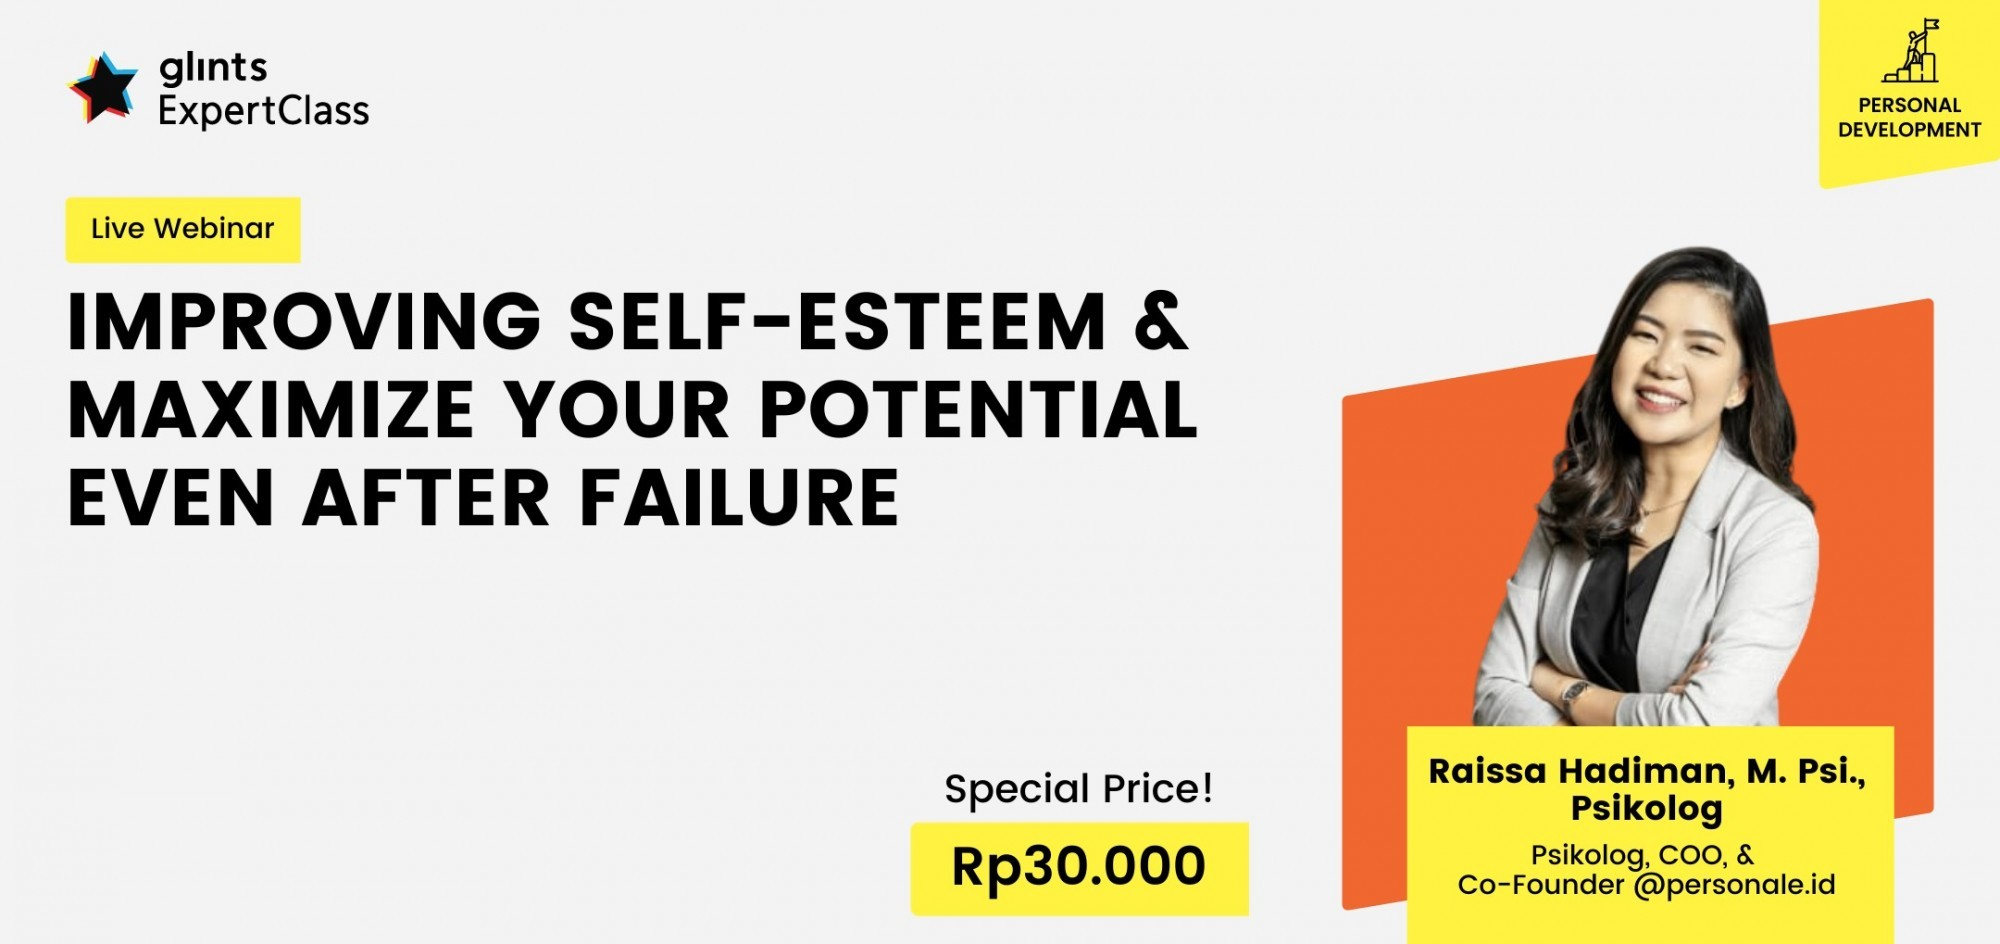 Improving Self-Esteem and Maximize Your Potential Even After Failure